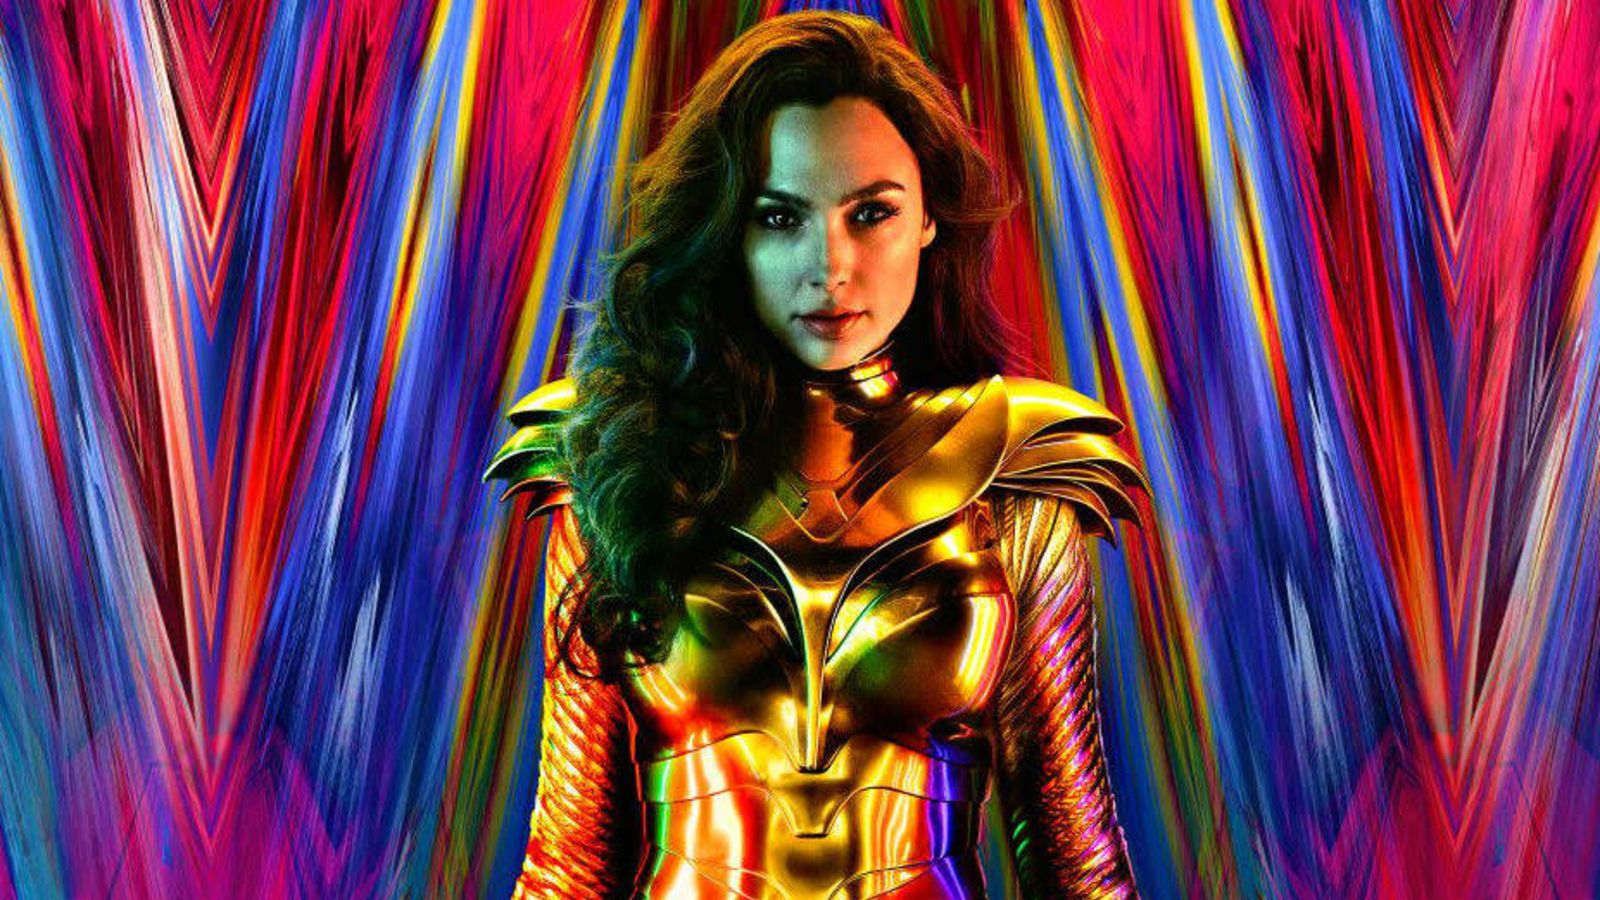 Wonder Woman 1984 S New Poster Gives Us A Look At Diana S Stunning Armor With Images Wonder Woman Famous Comics New Poster